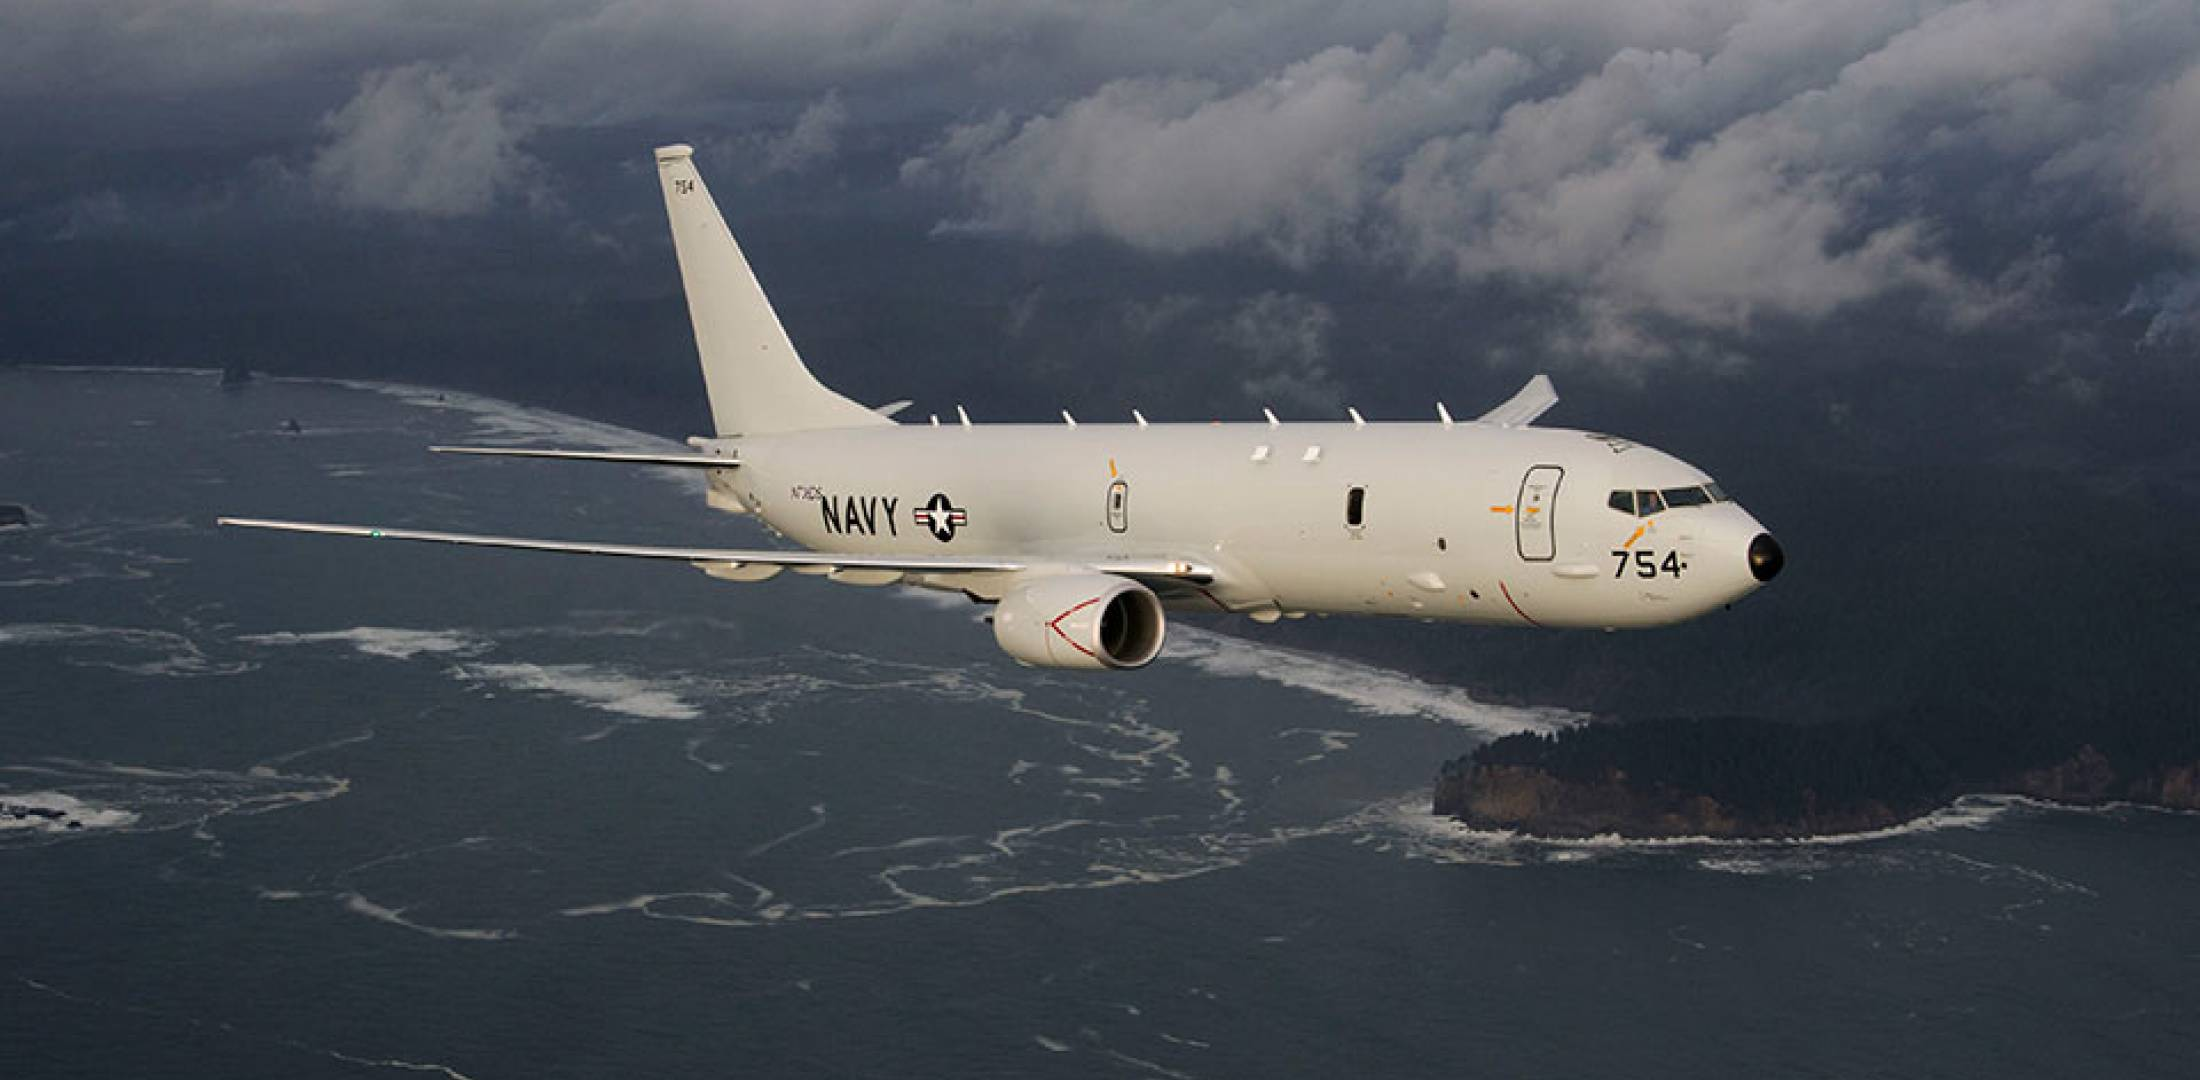 P-8A in flight